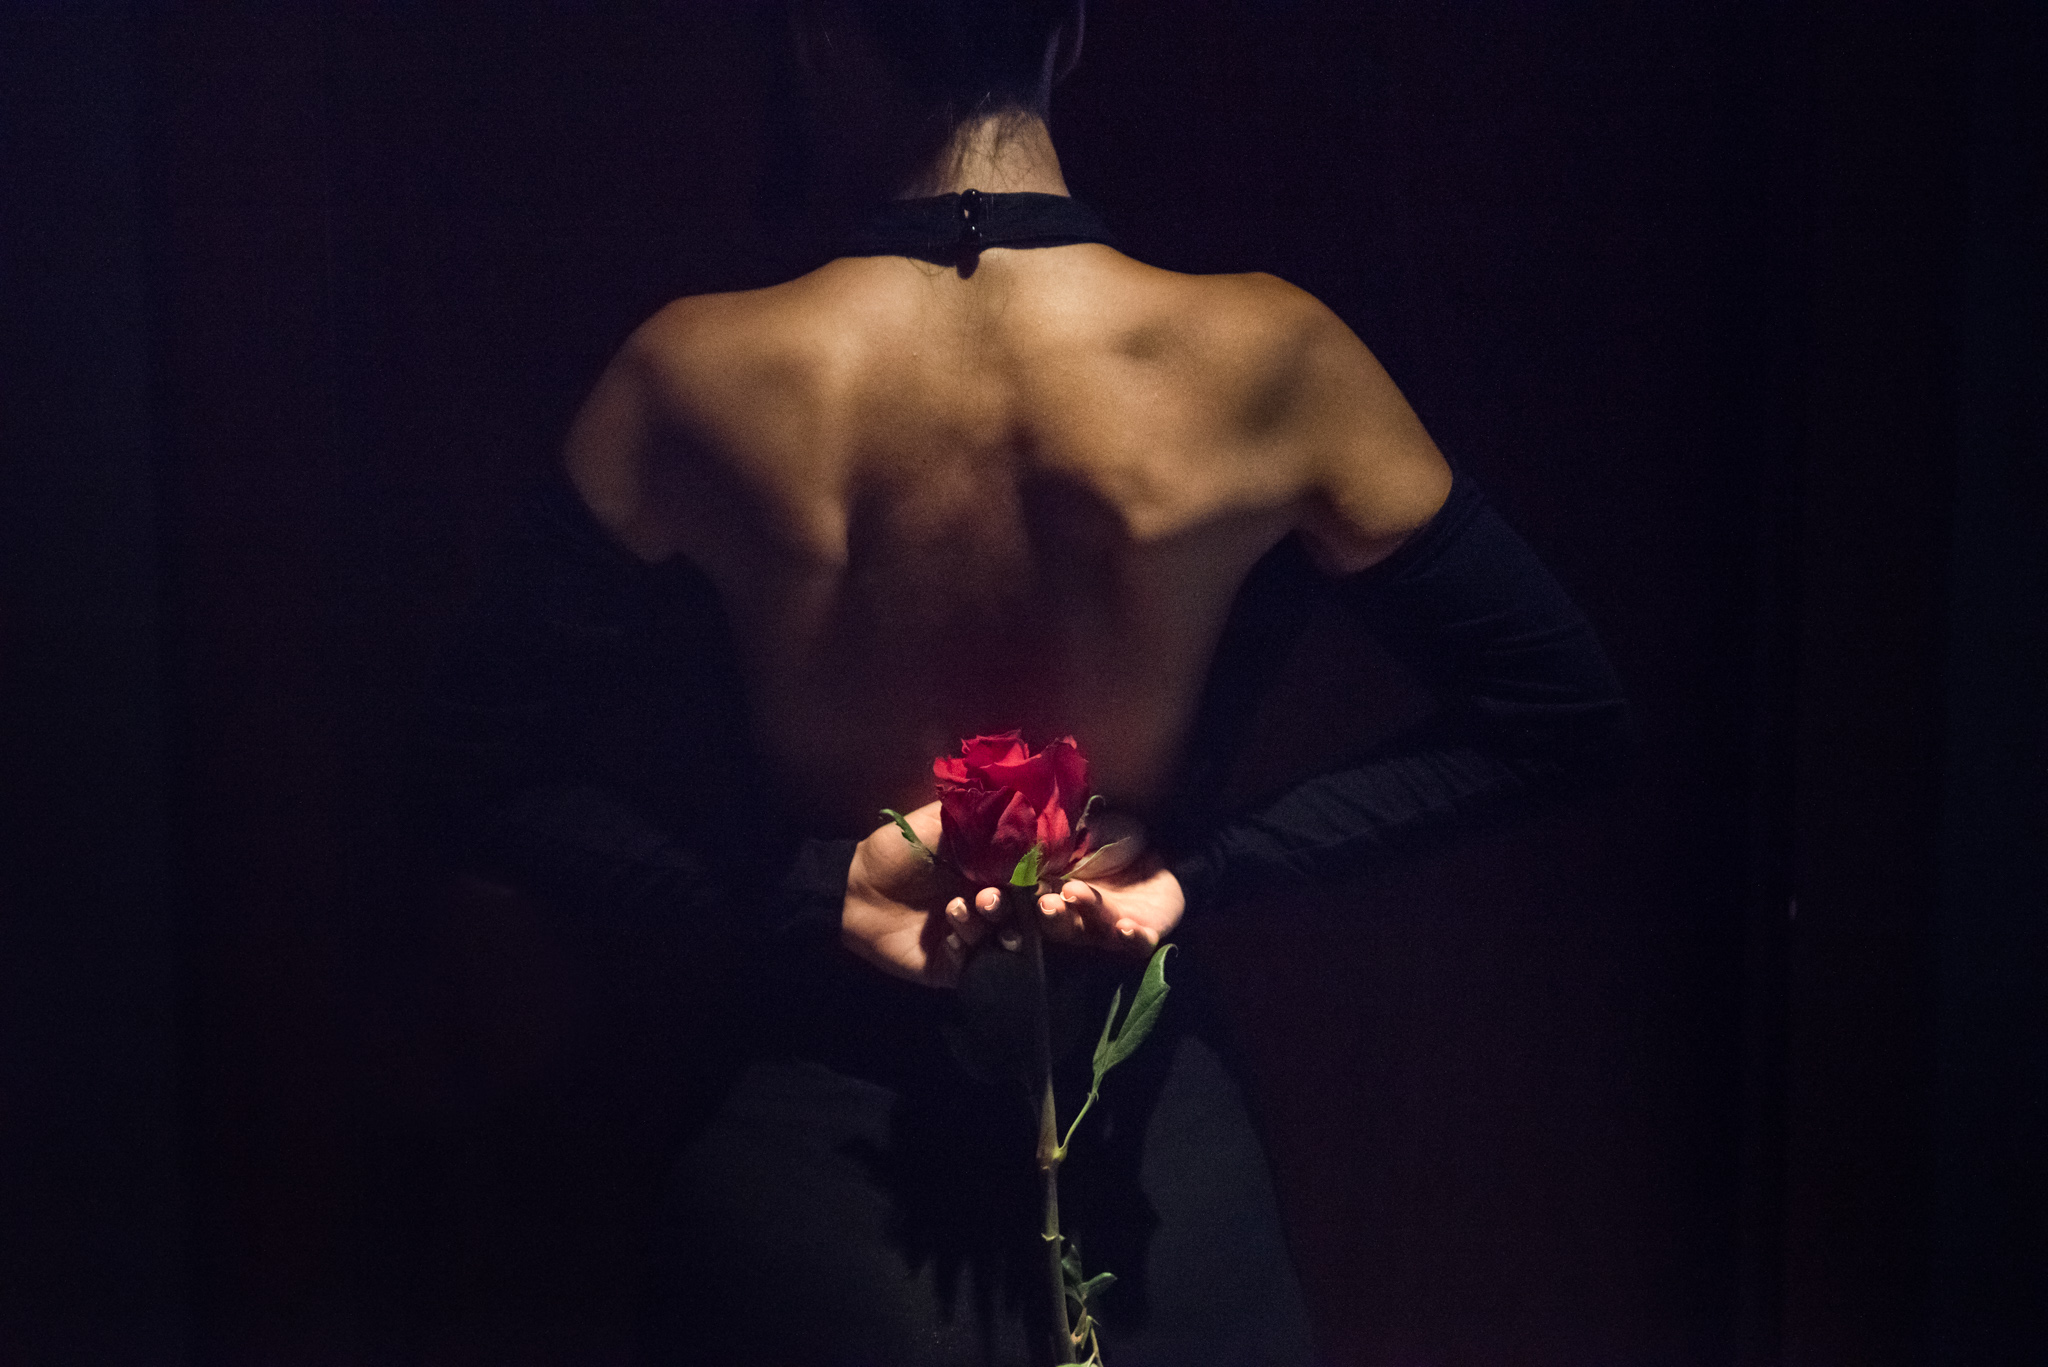 Dubai Glamour Photography boudoir image of woman holding red rose behind her back